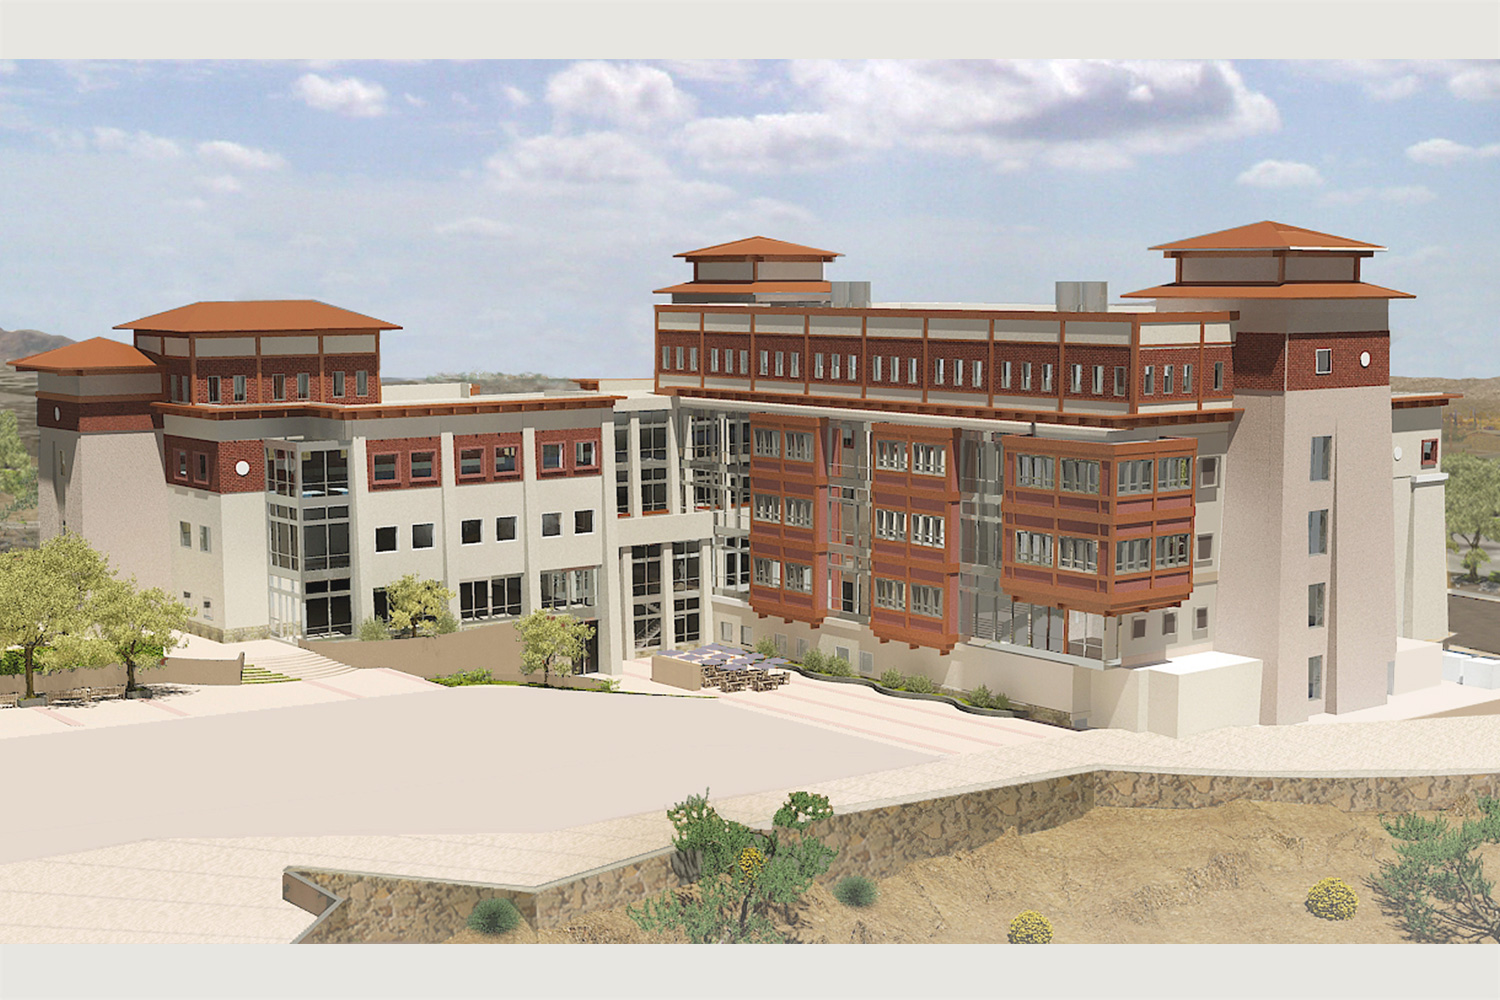 Projects_1500_UTEP_04.jpg